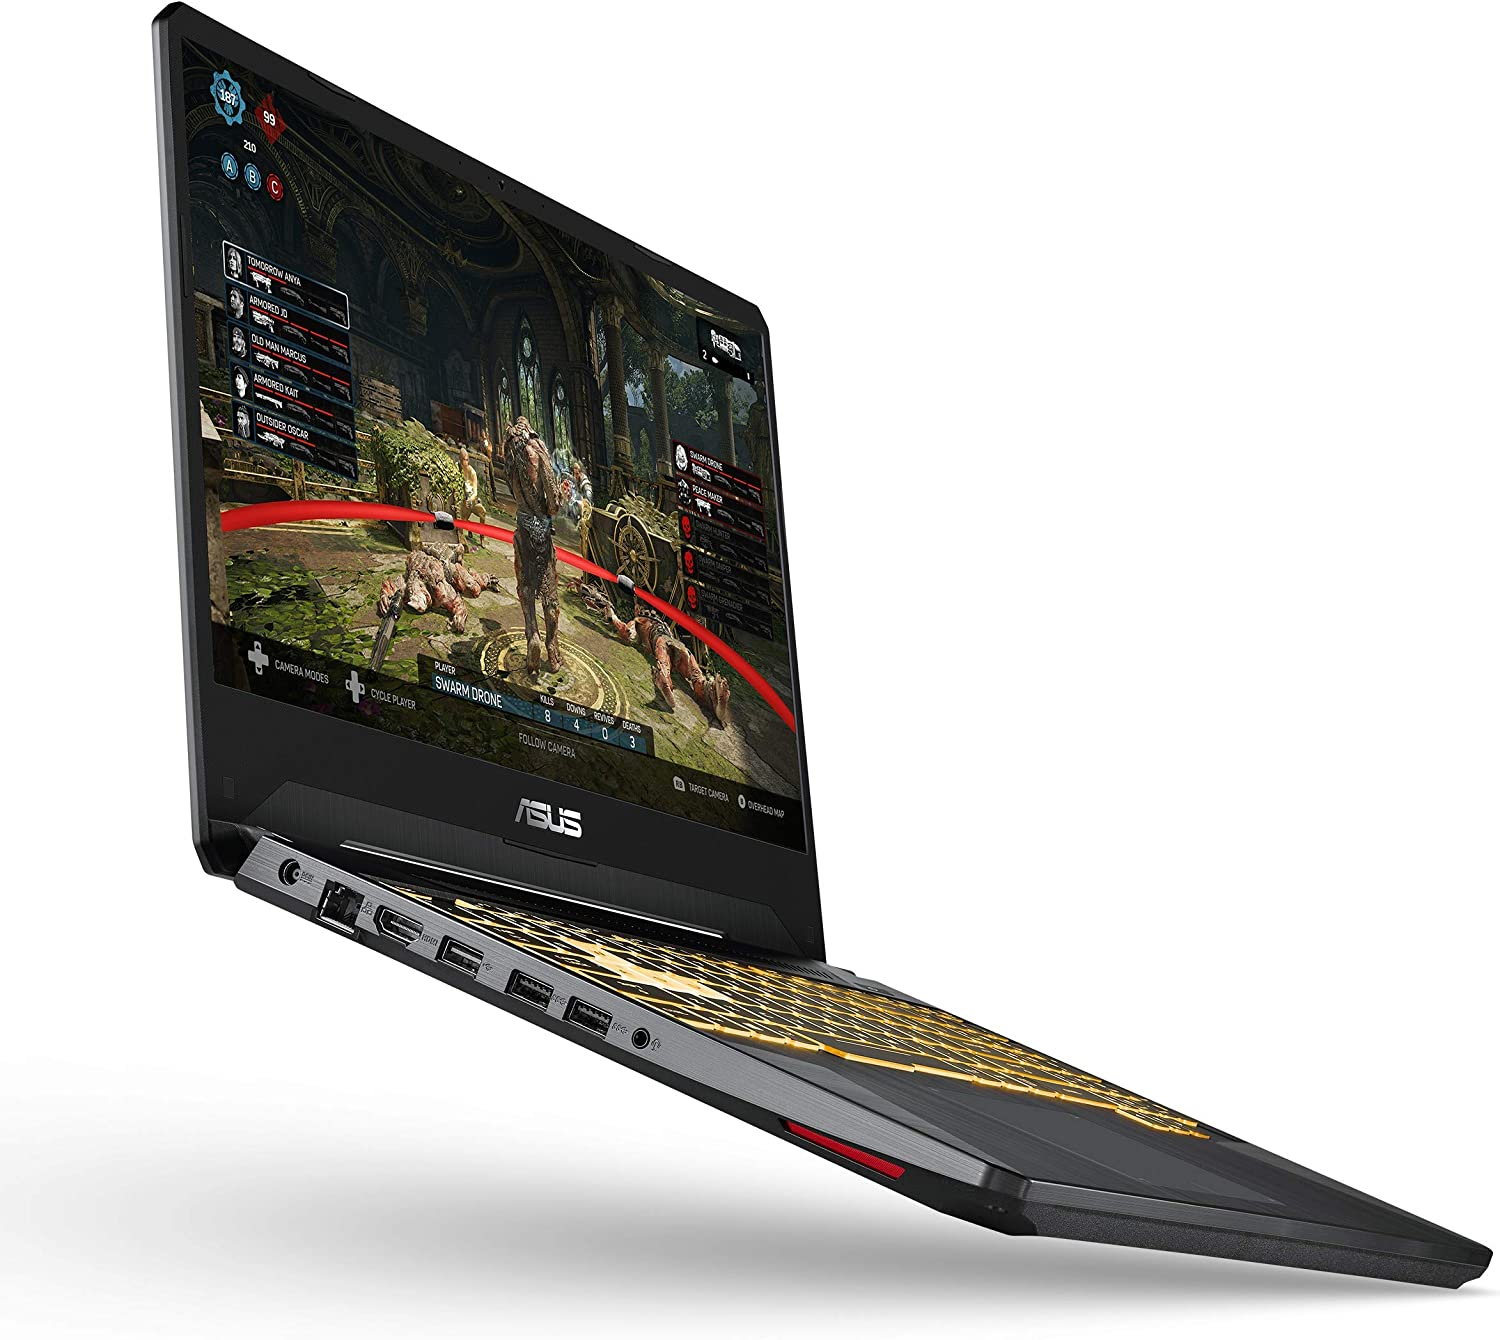 "ASUS TUF (2019) Gaming Laptop, 15.6"" 120Hz Full HD IPS-Type, AMD Ryzen 7 3750H, GeForce GTX 1660 Ti, 16GB DDR4, 256GB PCIe SSD + 1TB HDD, Gigabit WiFi 5, Windows 10 Home, TUF505DU-EB74 (Renewed)"